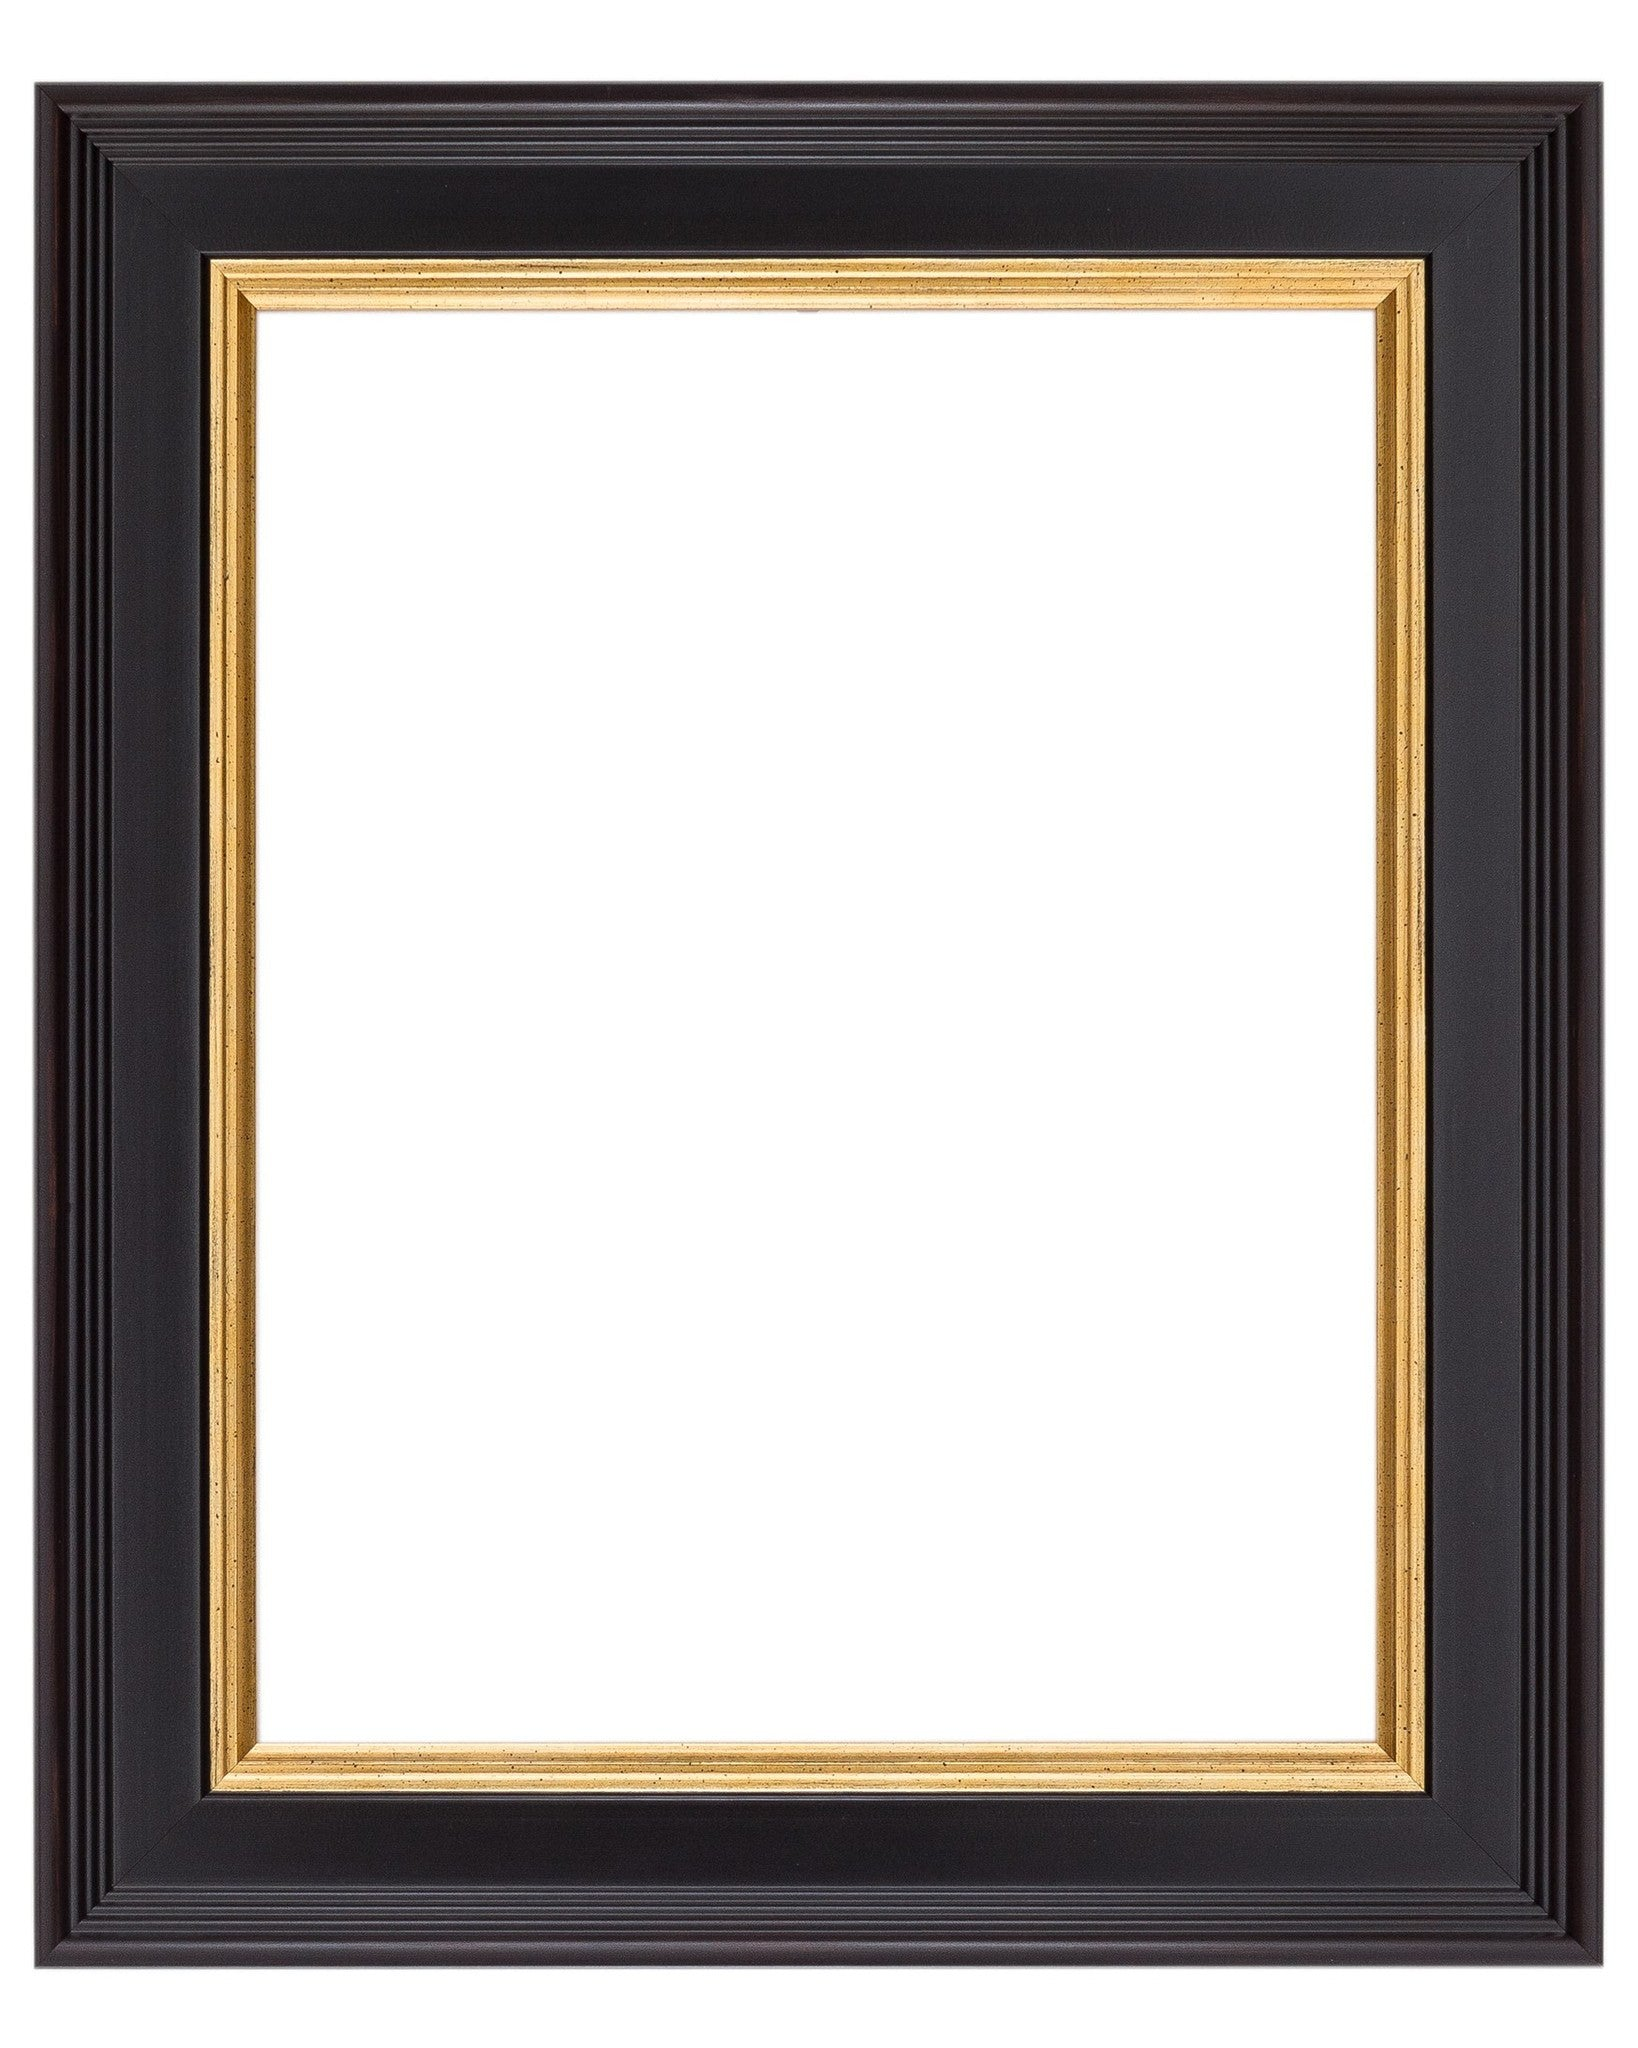 Academie 2 1 8 Black And Gold Artist Frame Wholesale Frame Company